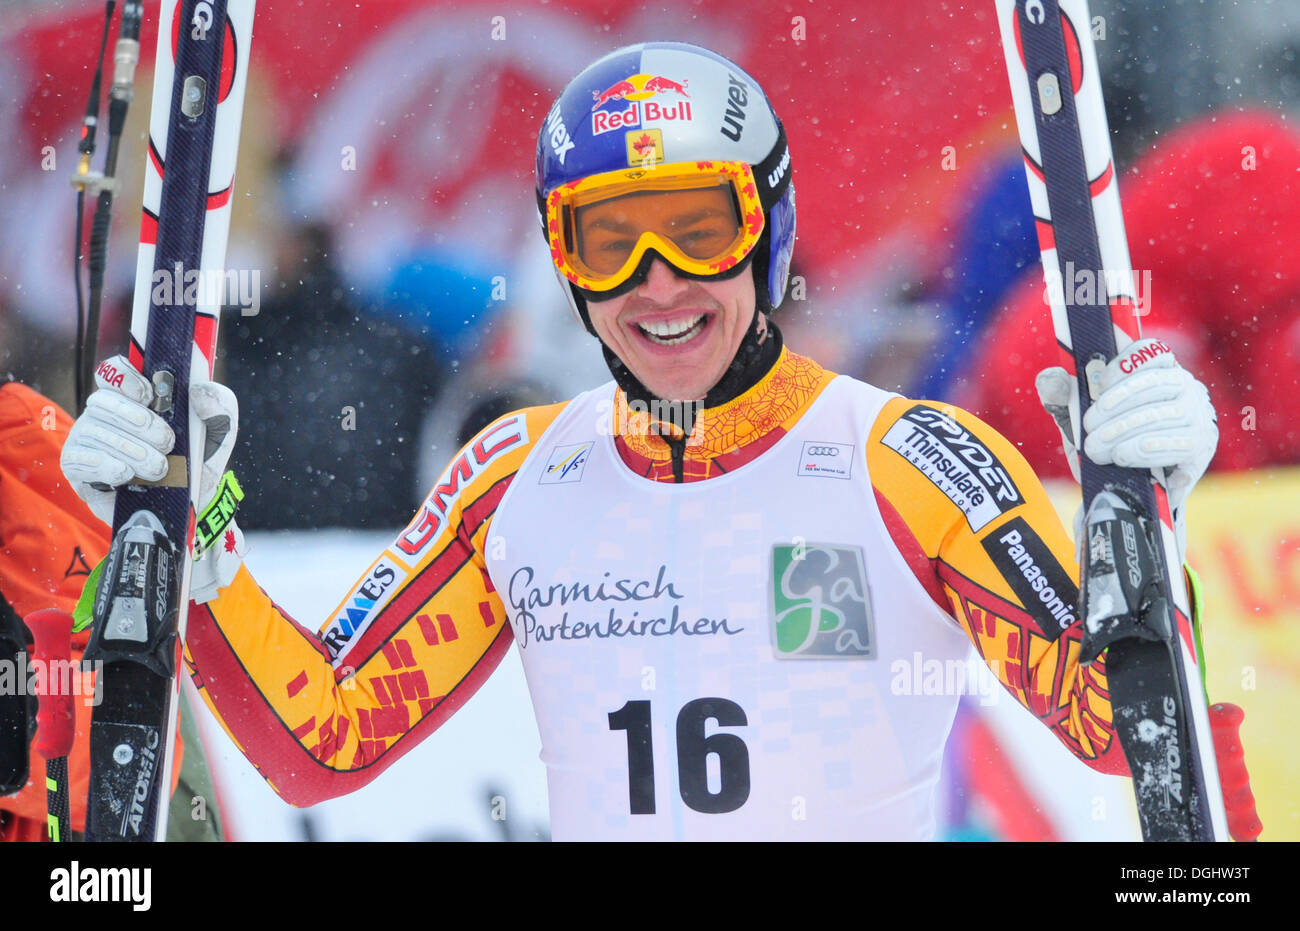 Eric Guay, winner, Super-G 2010, winner of the Super-G overall ranking, small crystal ball as prize, Ski World Cup - Stock Image